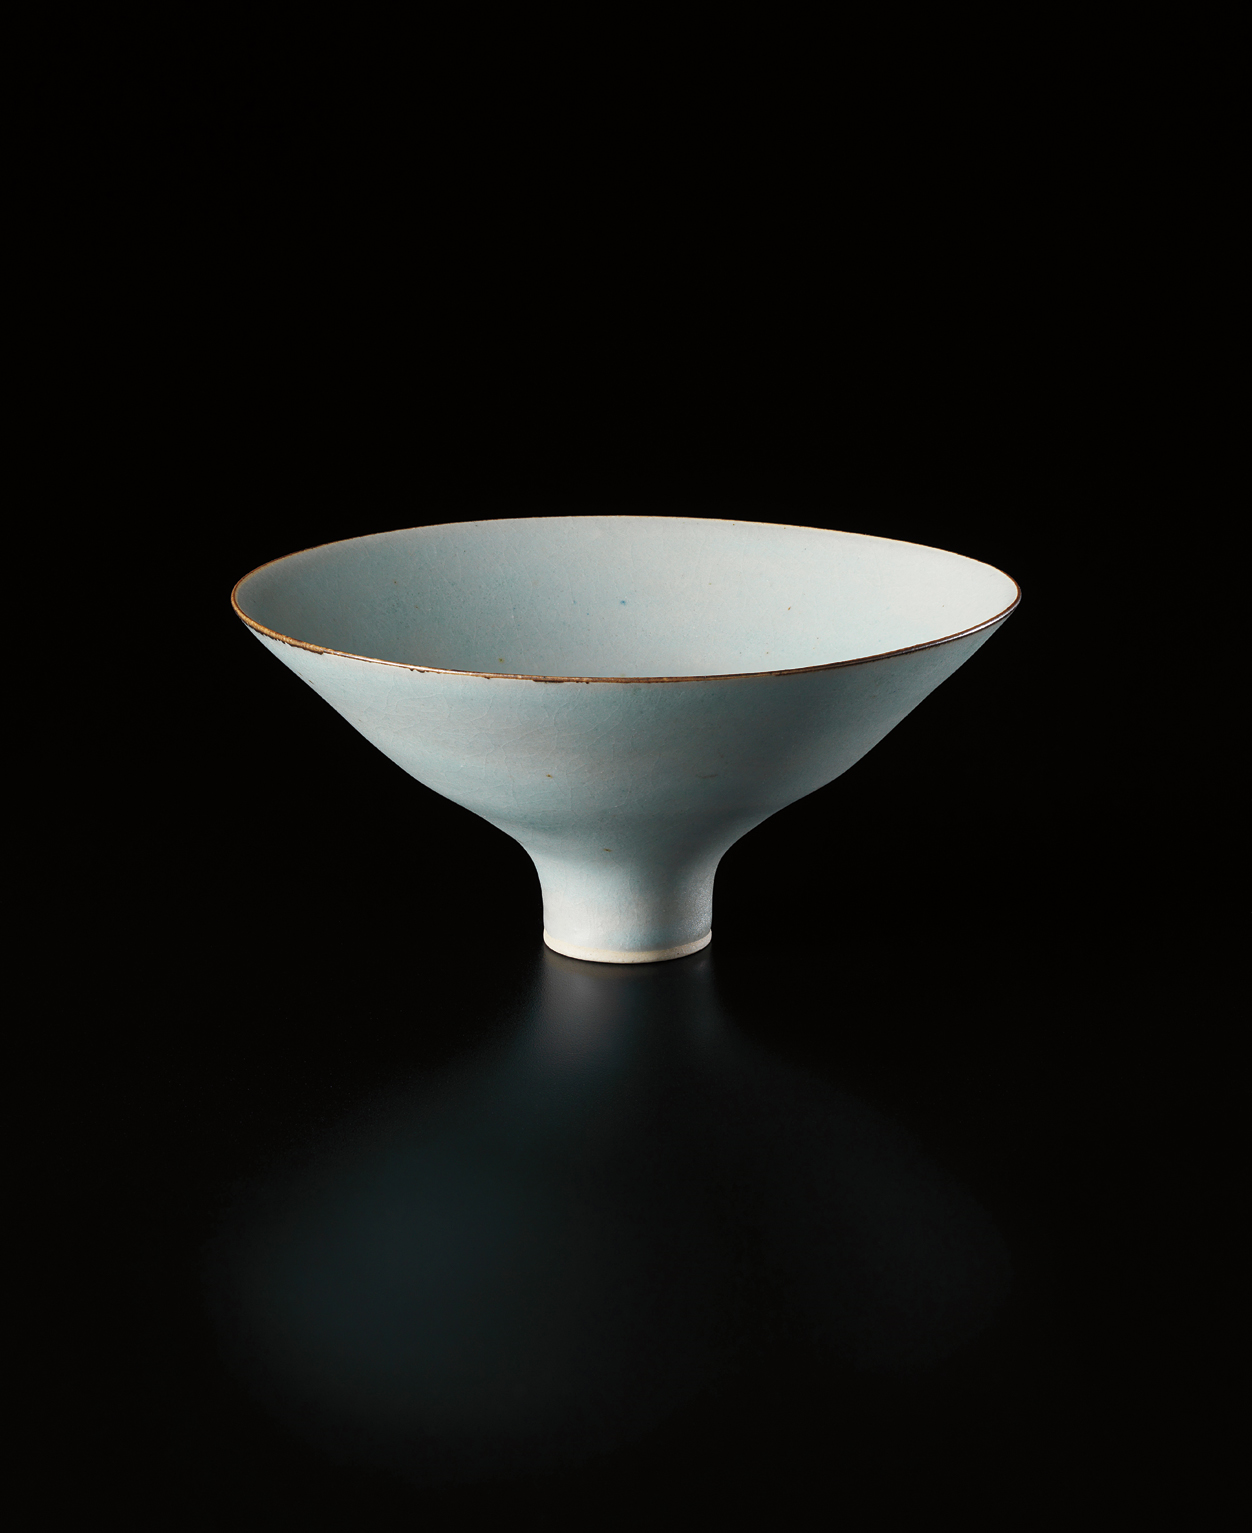 PHILLIPS : UK050213, LUCIE RIE, Footed bowl